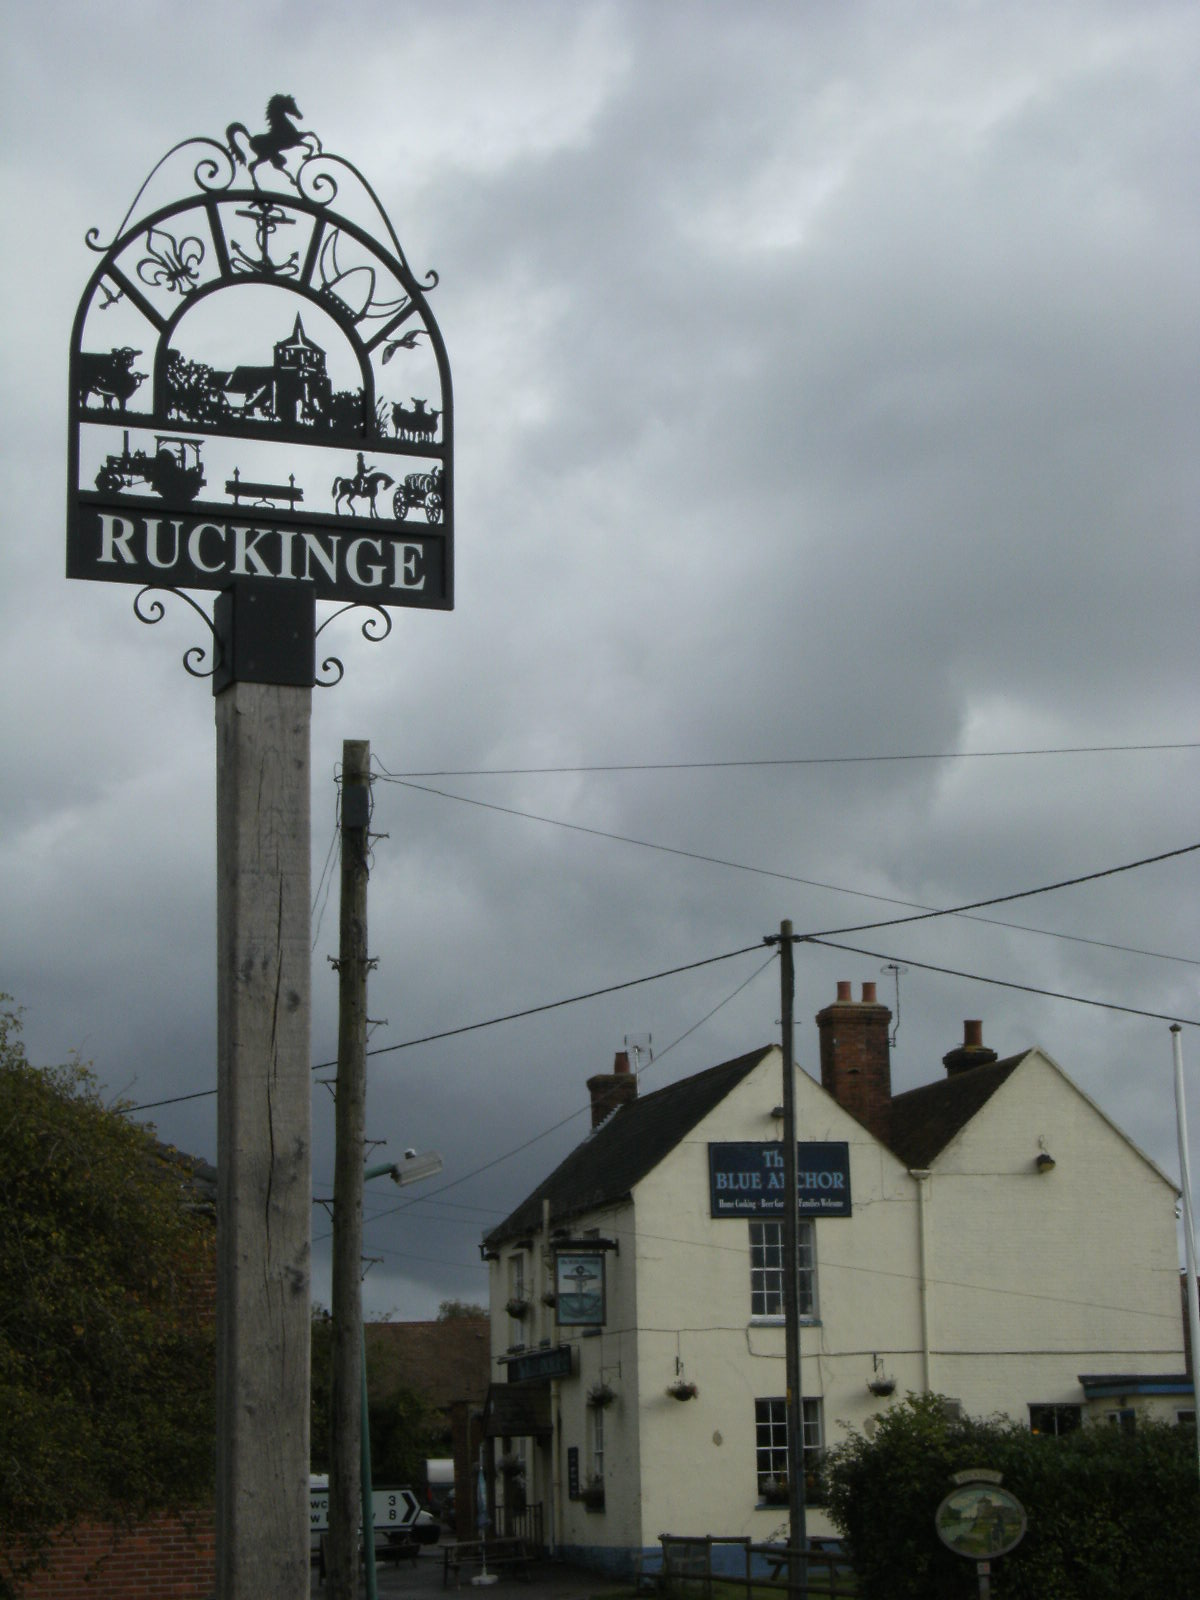 1010170052 Ruckinge village sign